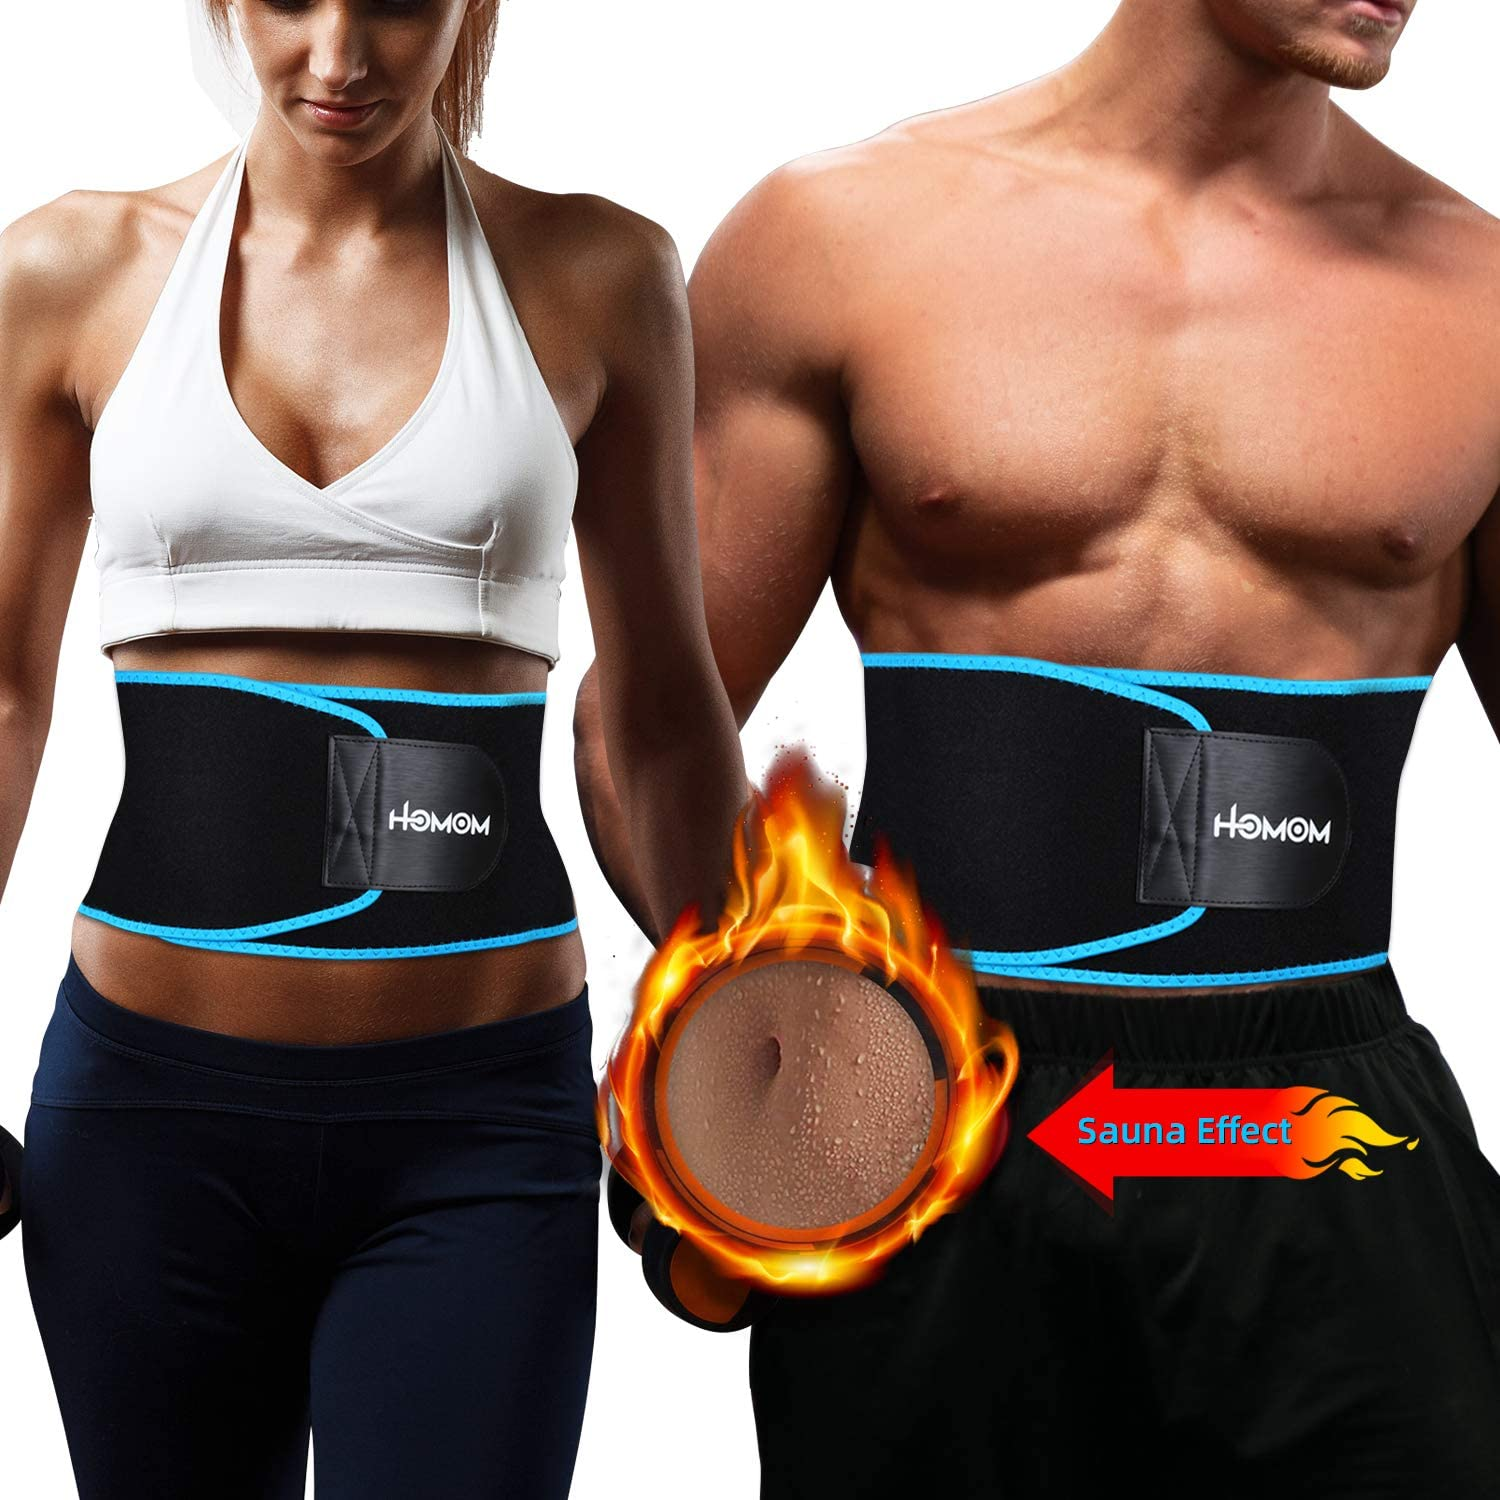 Low Back and Lumbar Ab Slimmer Belt for Women /& Men Waist Slimming Belt HLOMOM Waist Trimmer Waist Trainer